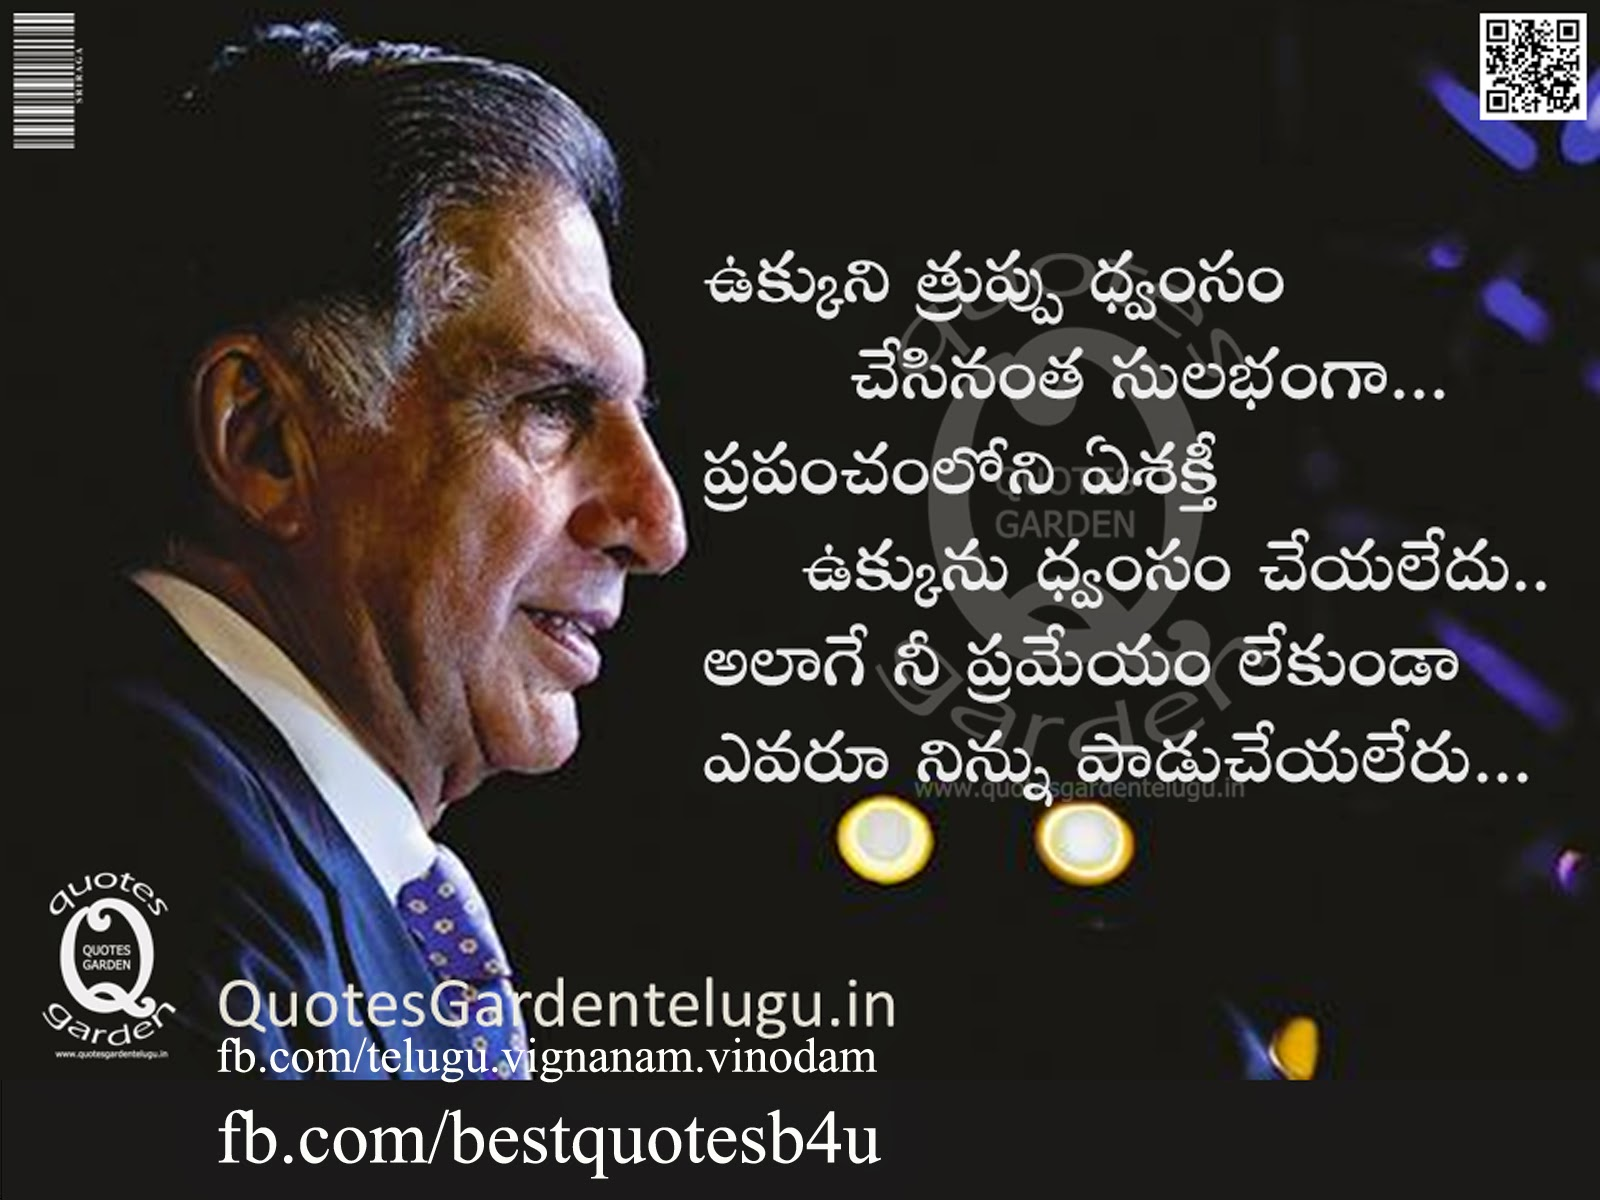 Telugu Nice Quotes with wallpapers and images